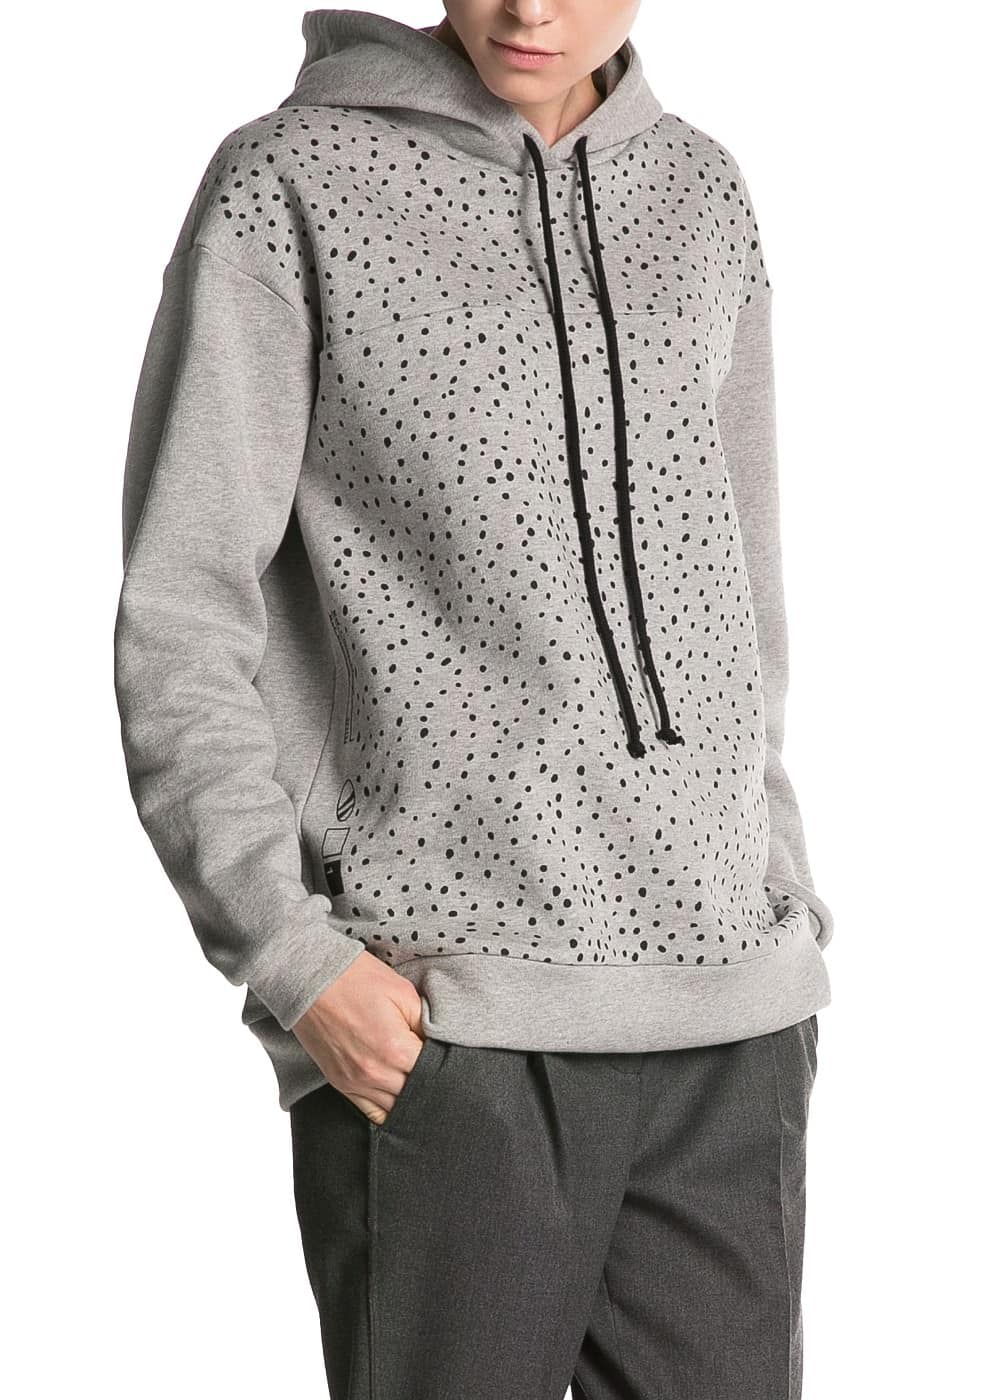 PREMIUM - Sweat-shirt à pois capuche